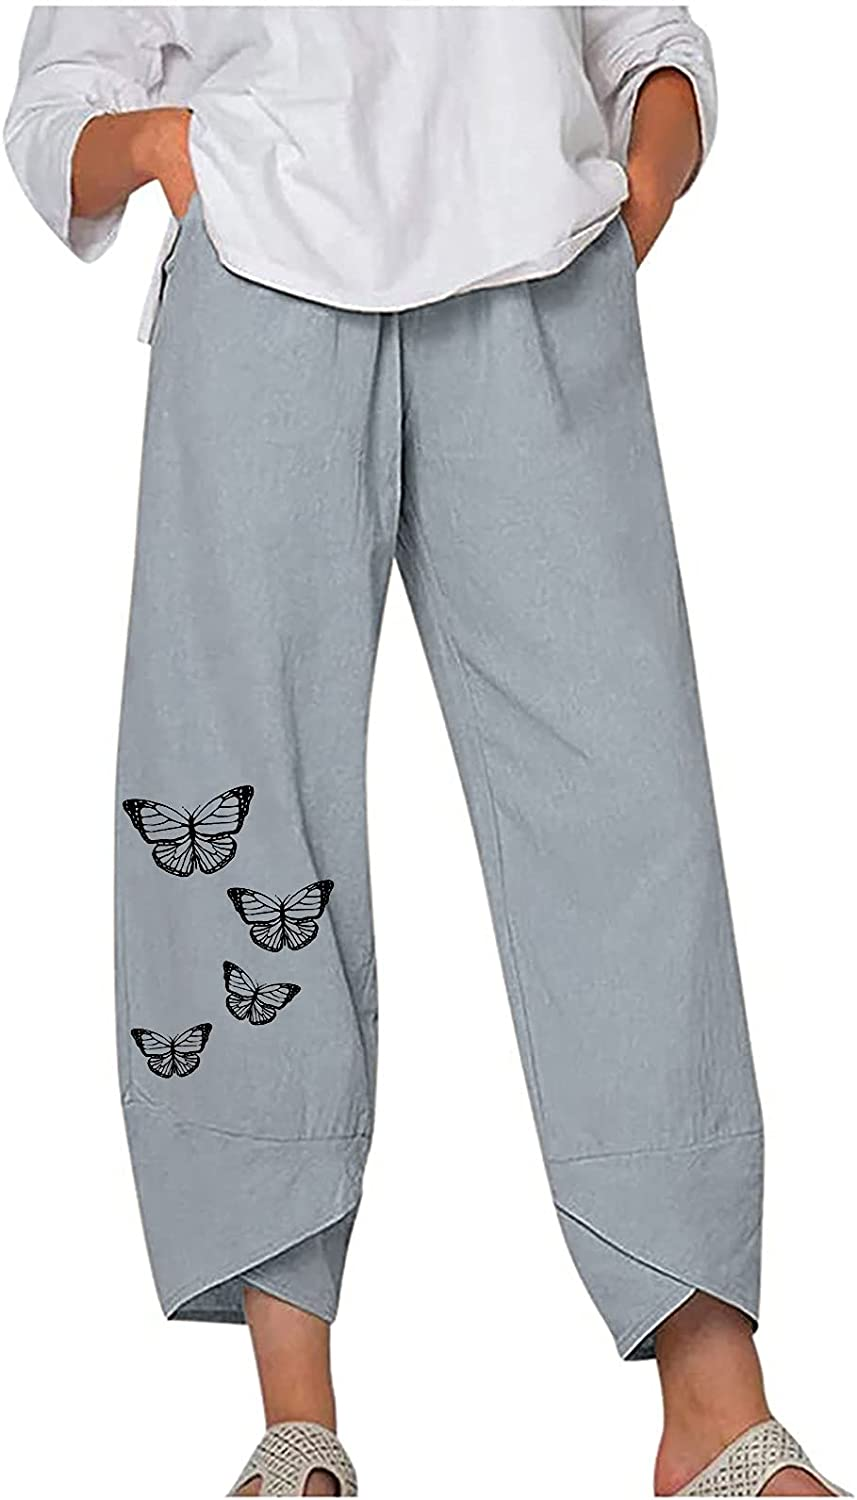 Fashion Pants Women's Solid Color Casual Butterfly Print Solid Color Trousers